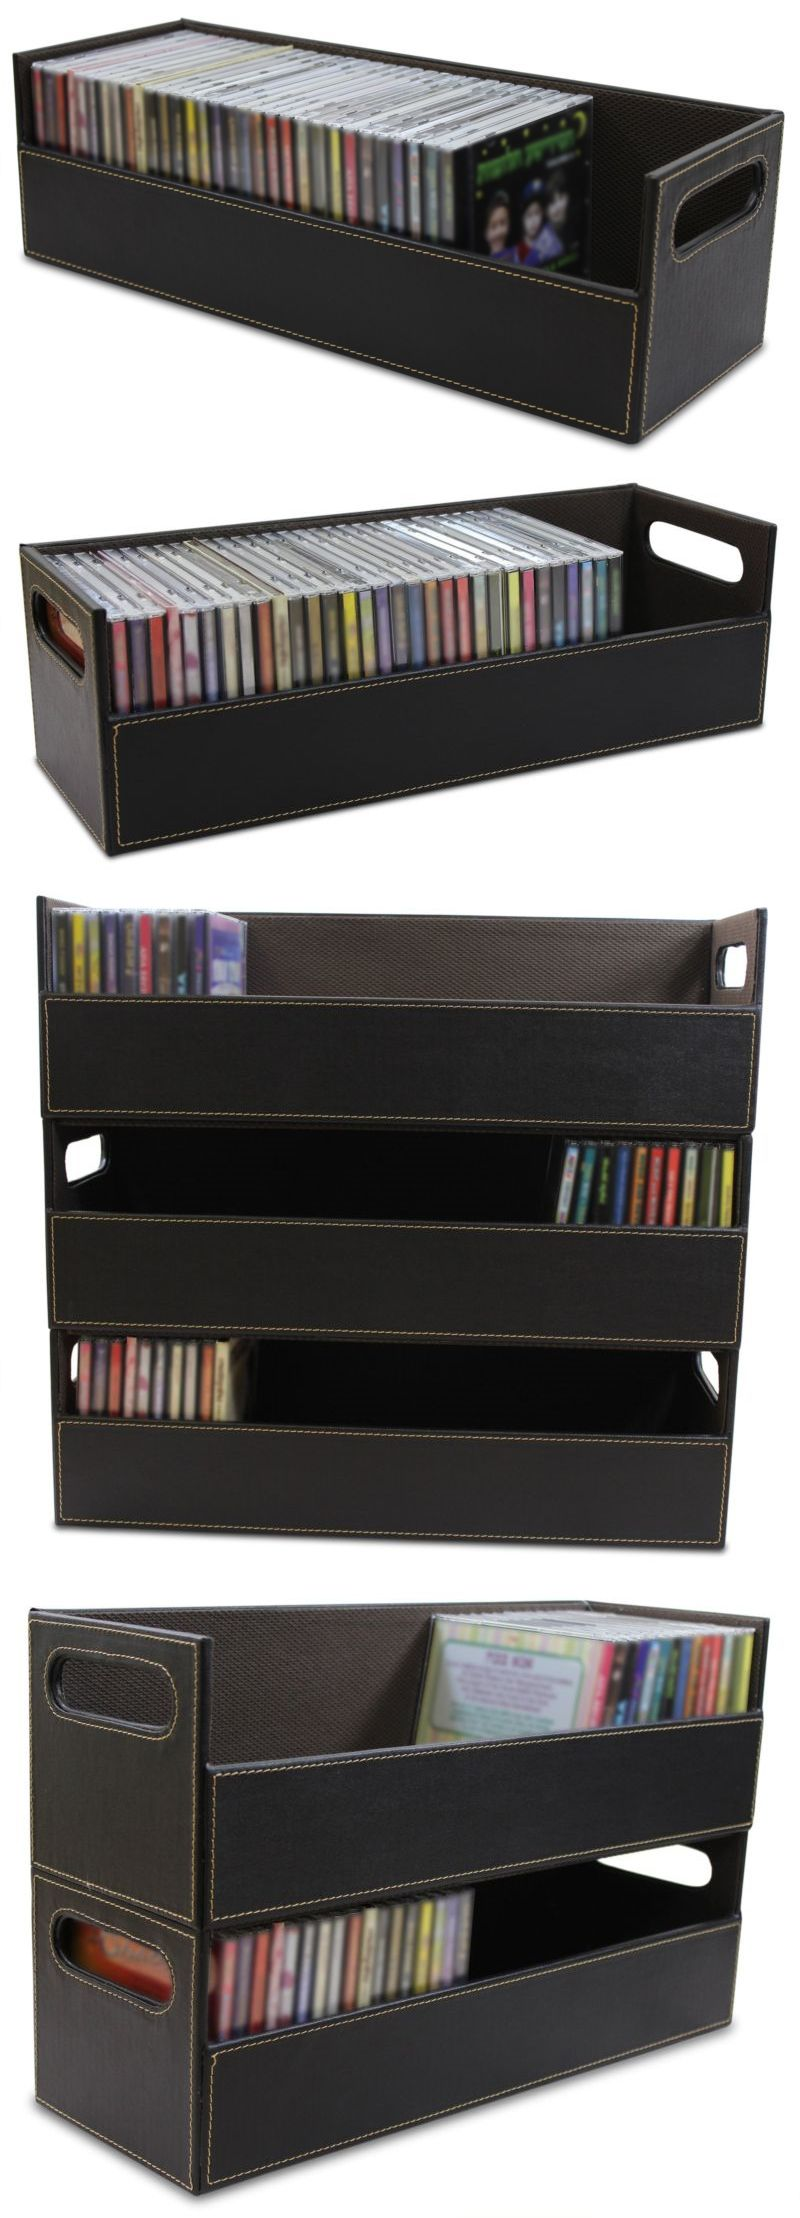 media cases and storage 40 cd storage box rack holder stacking tray shelf dvd disk